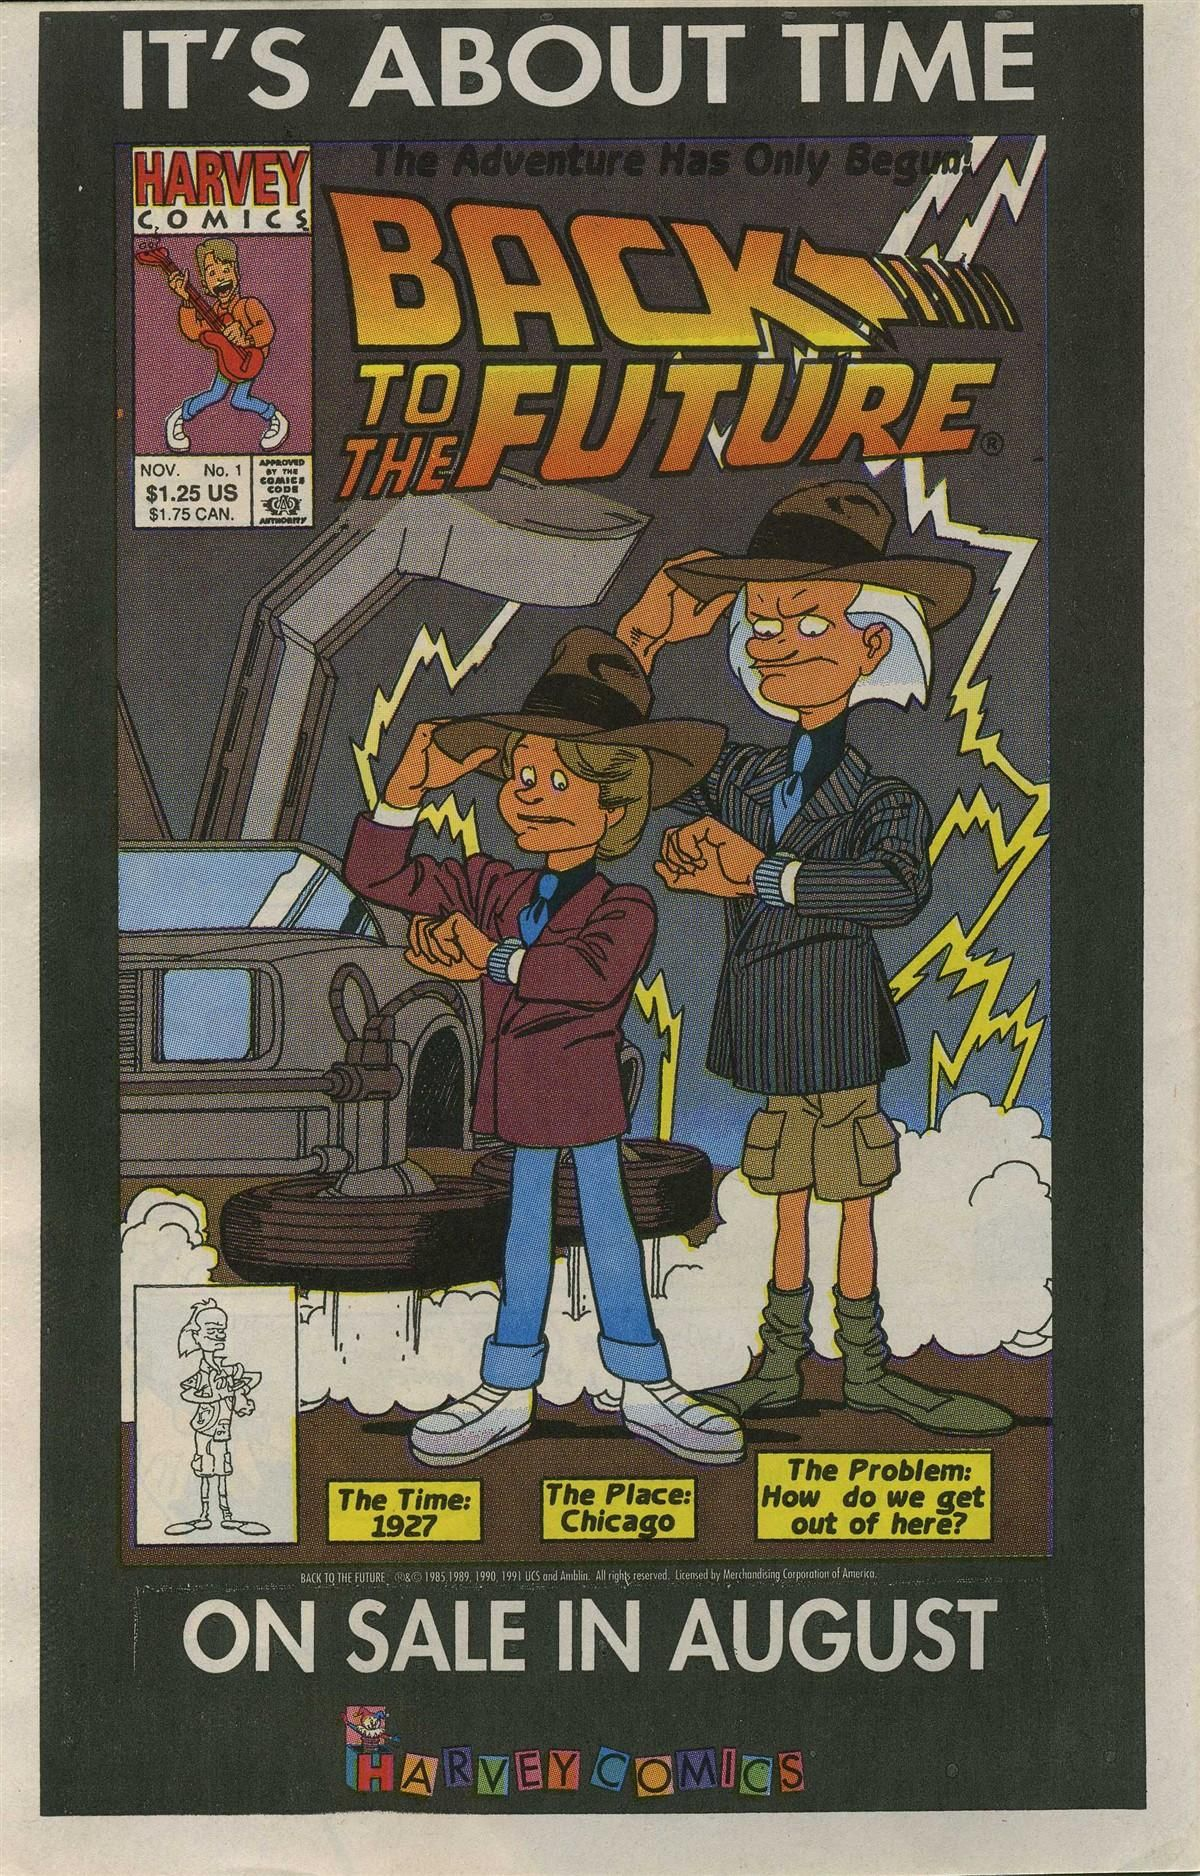 BACK TO THE FUTURE COMICS (1991 series) adfrom Casper and